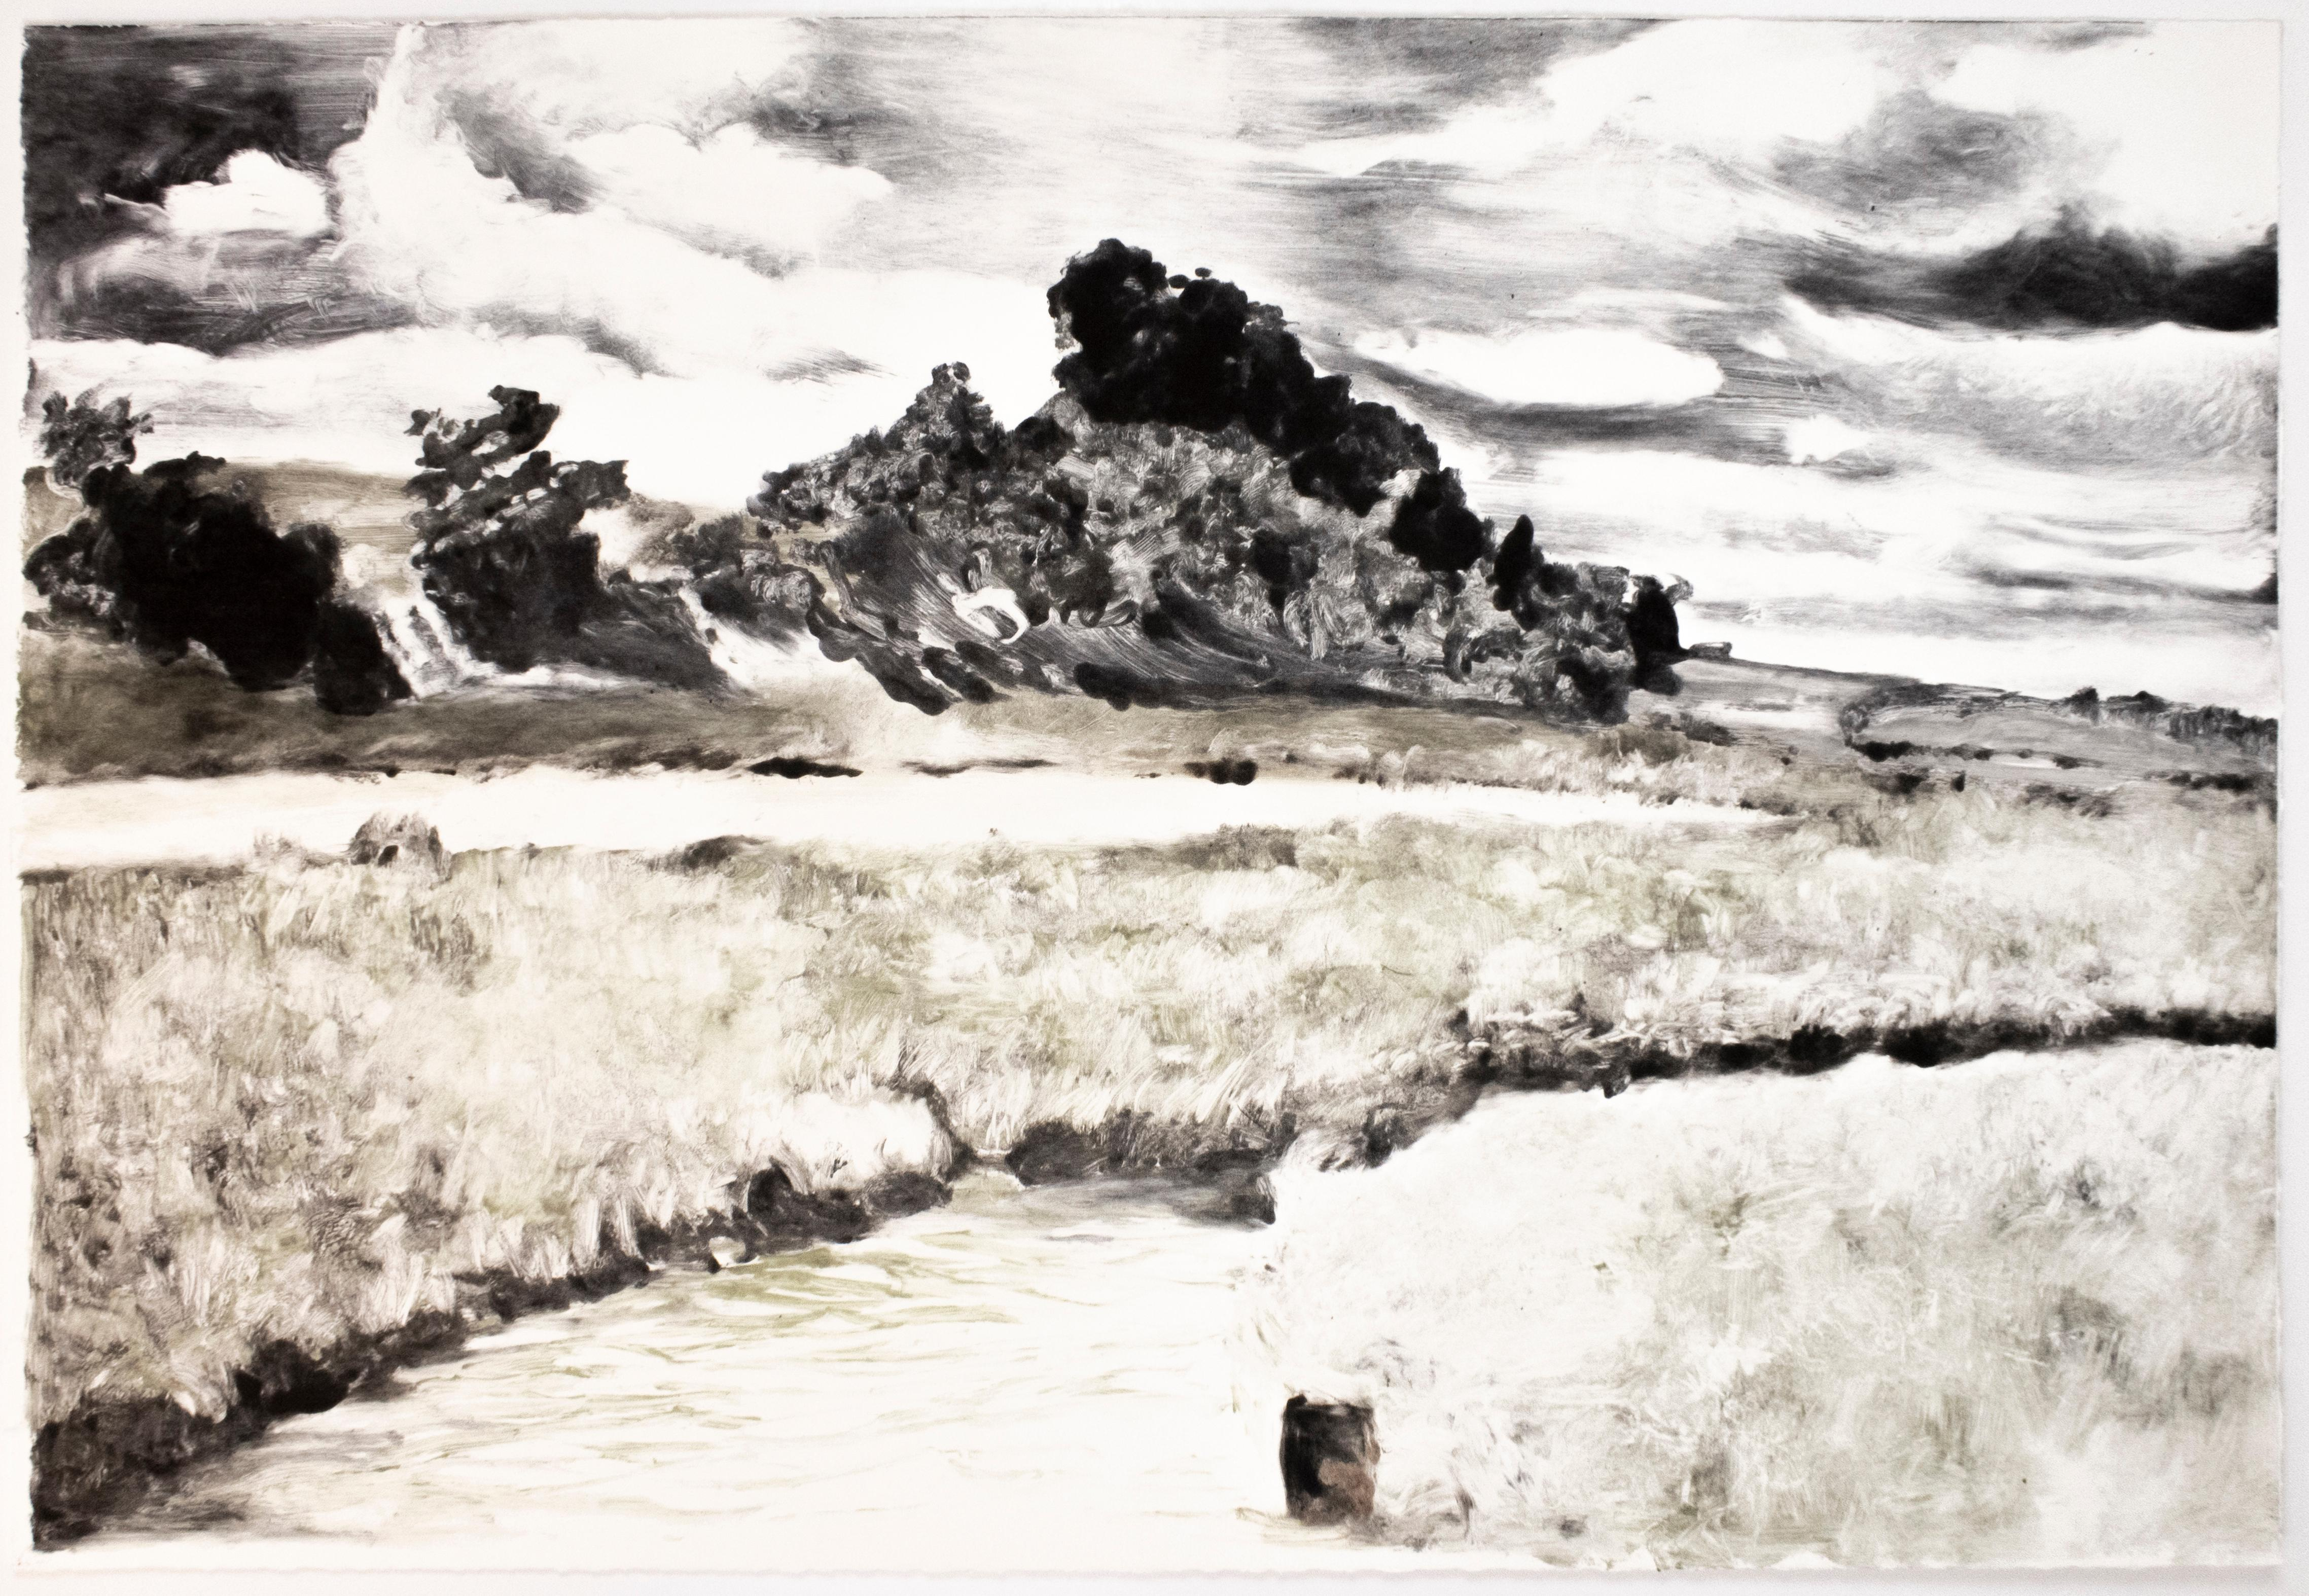 Landscape: Large scale black, white, green and grey Western American landscape